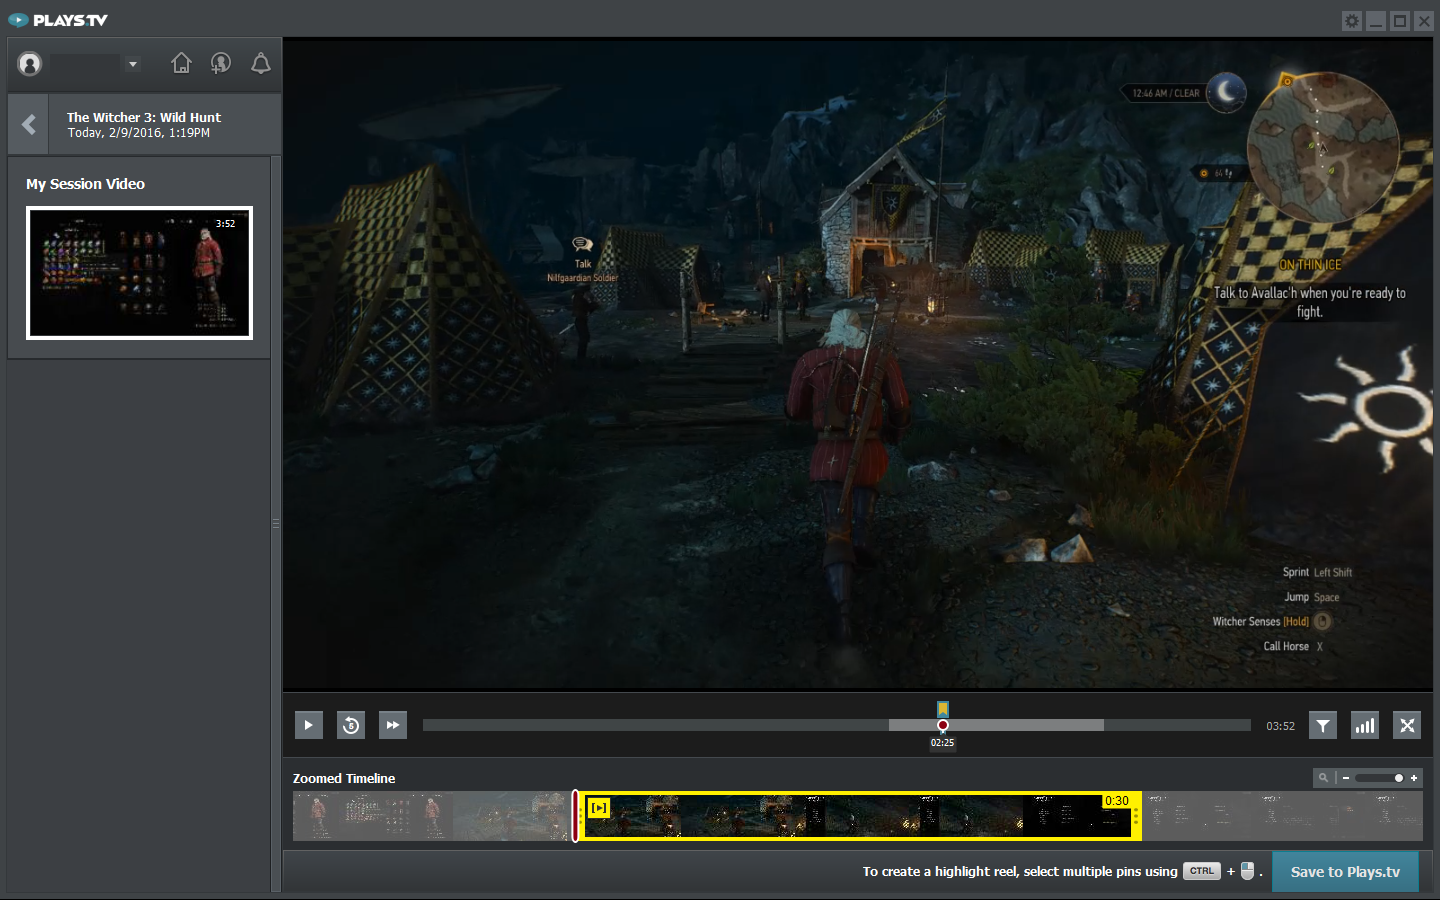 The best PC game video capture software: 5 top recording tools